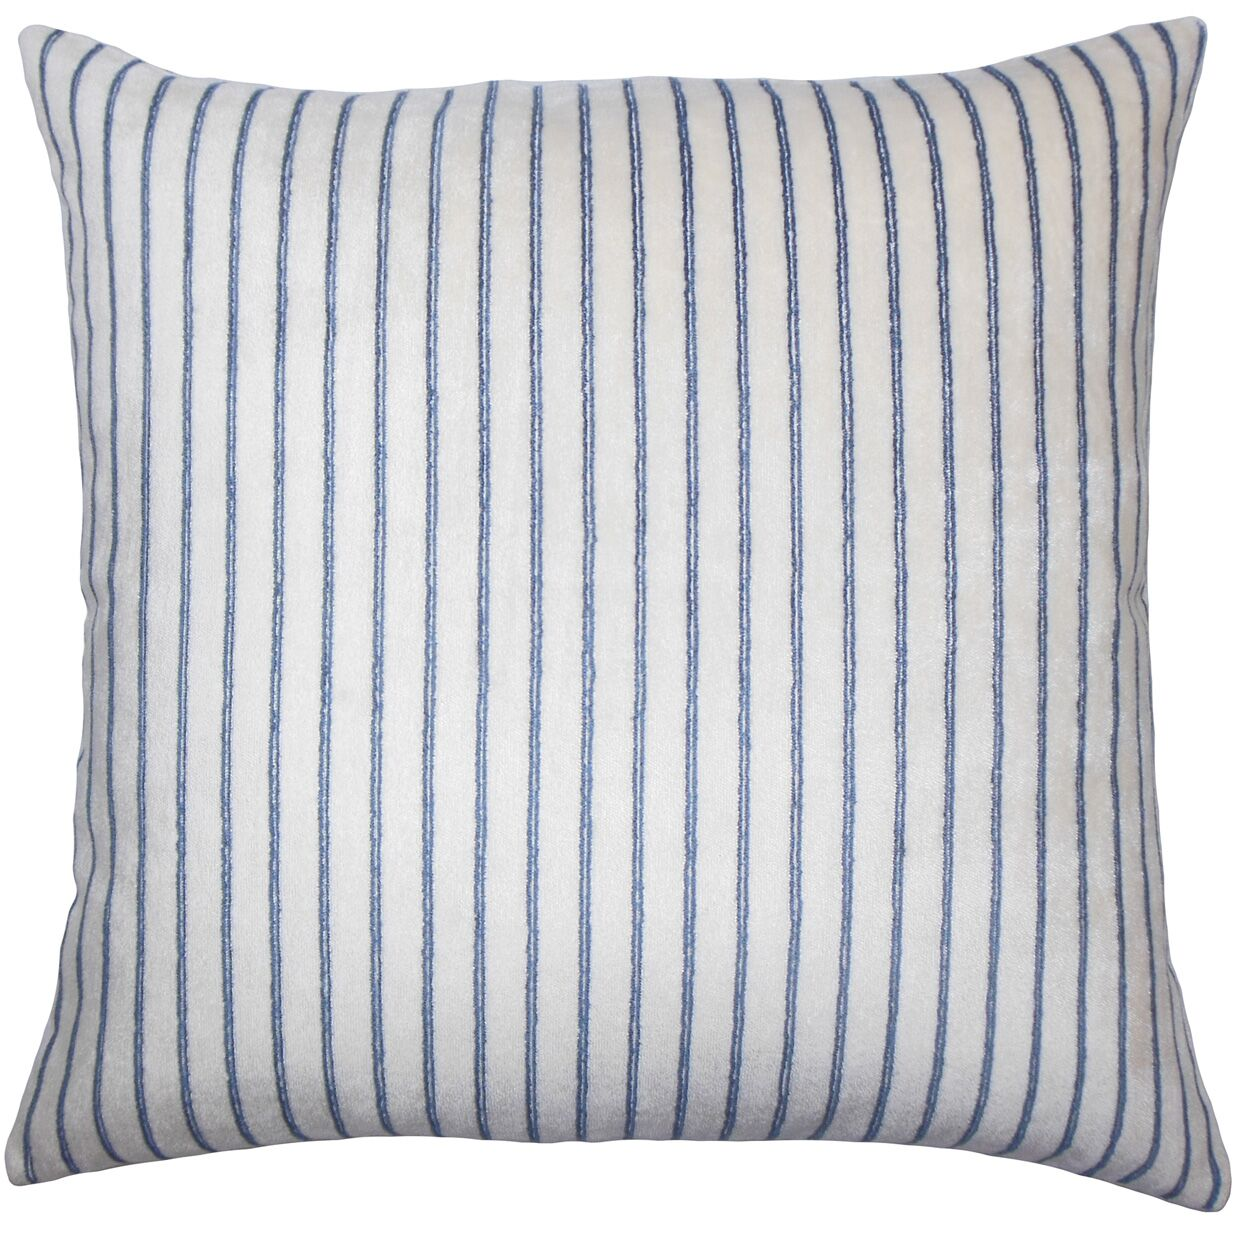 Ardley Striped Bedding Sham Size: Standard, Color: Blue